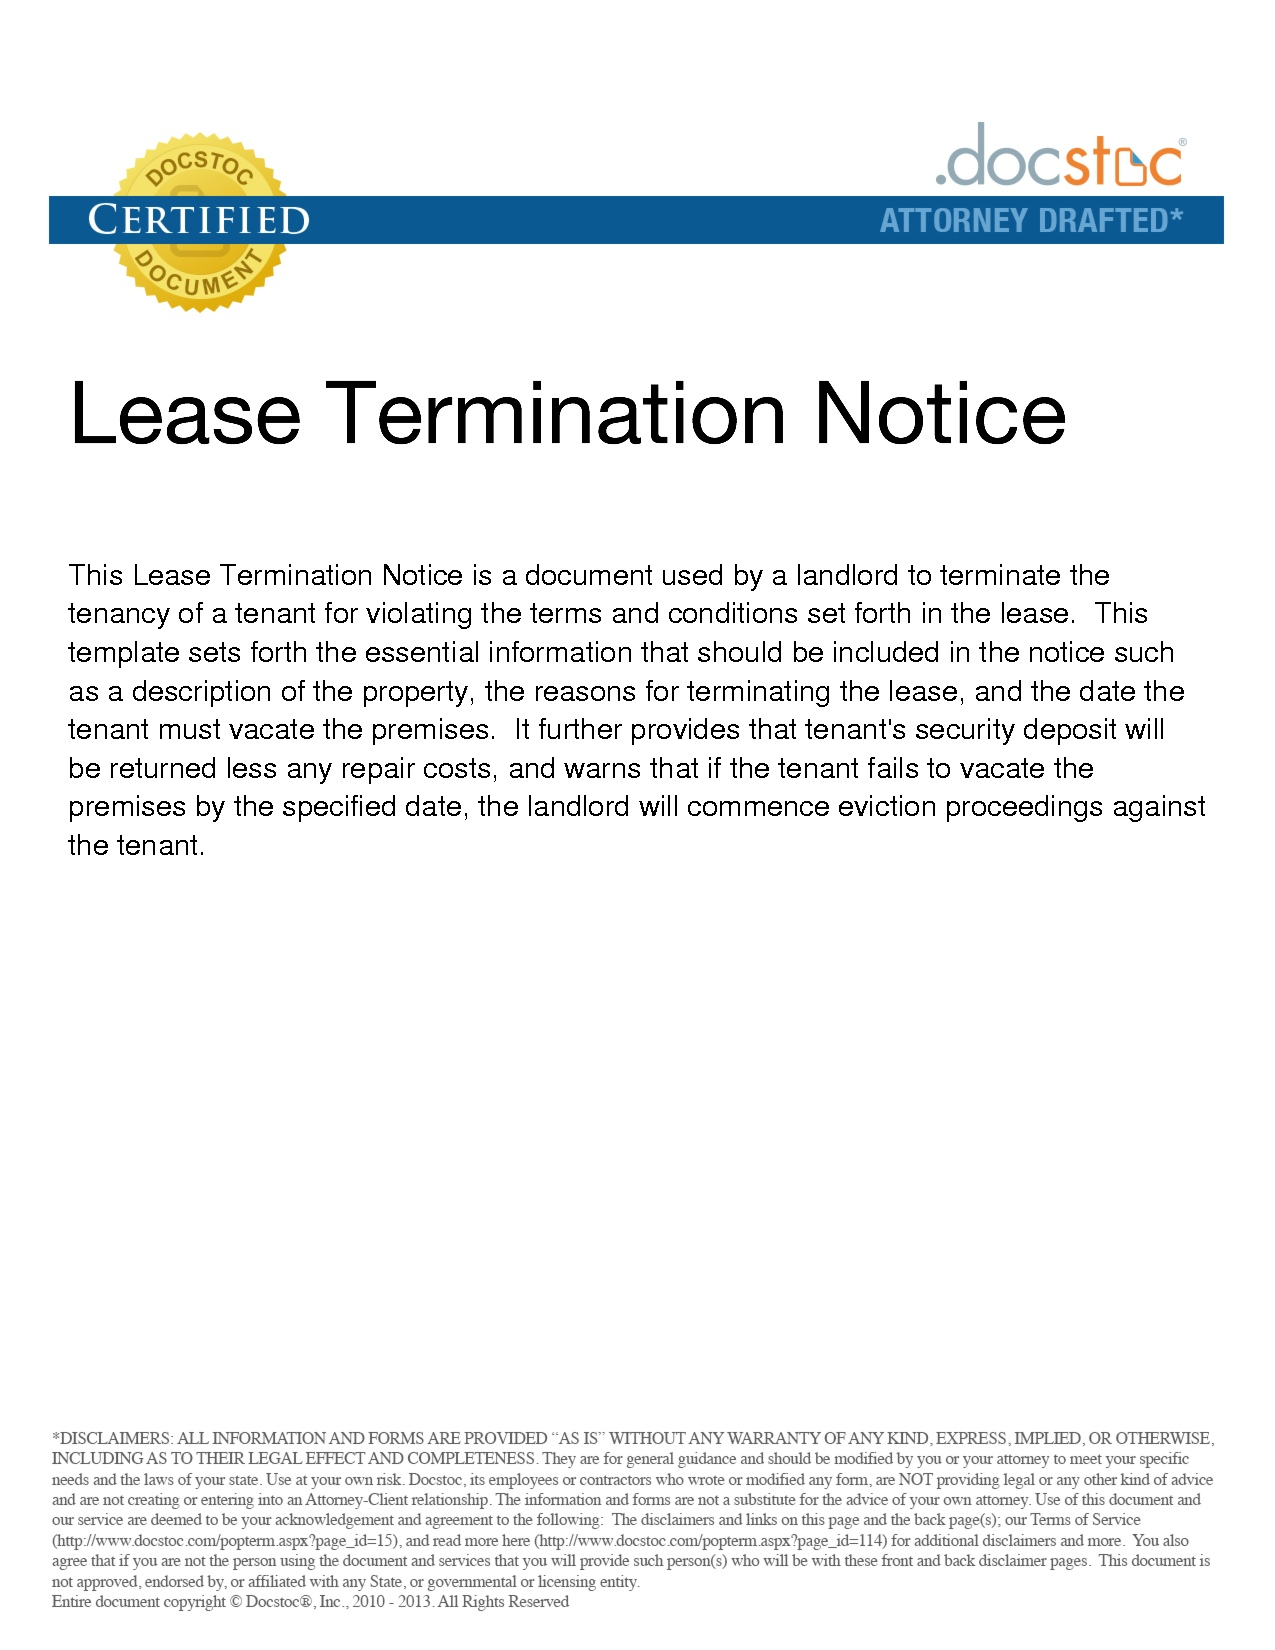 Termination Of Lease Agreement Termination Of Lease Agreement Sample Excellent Landlord Termination